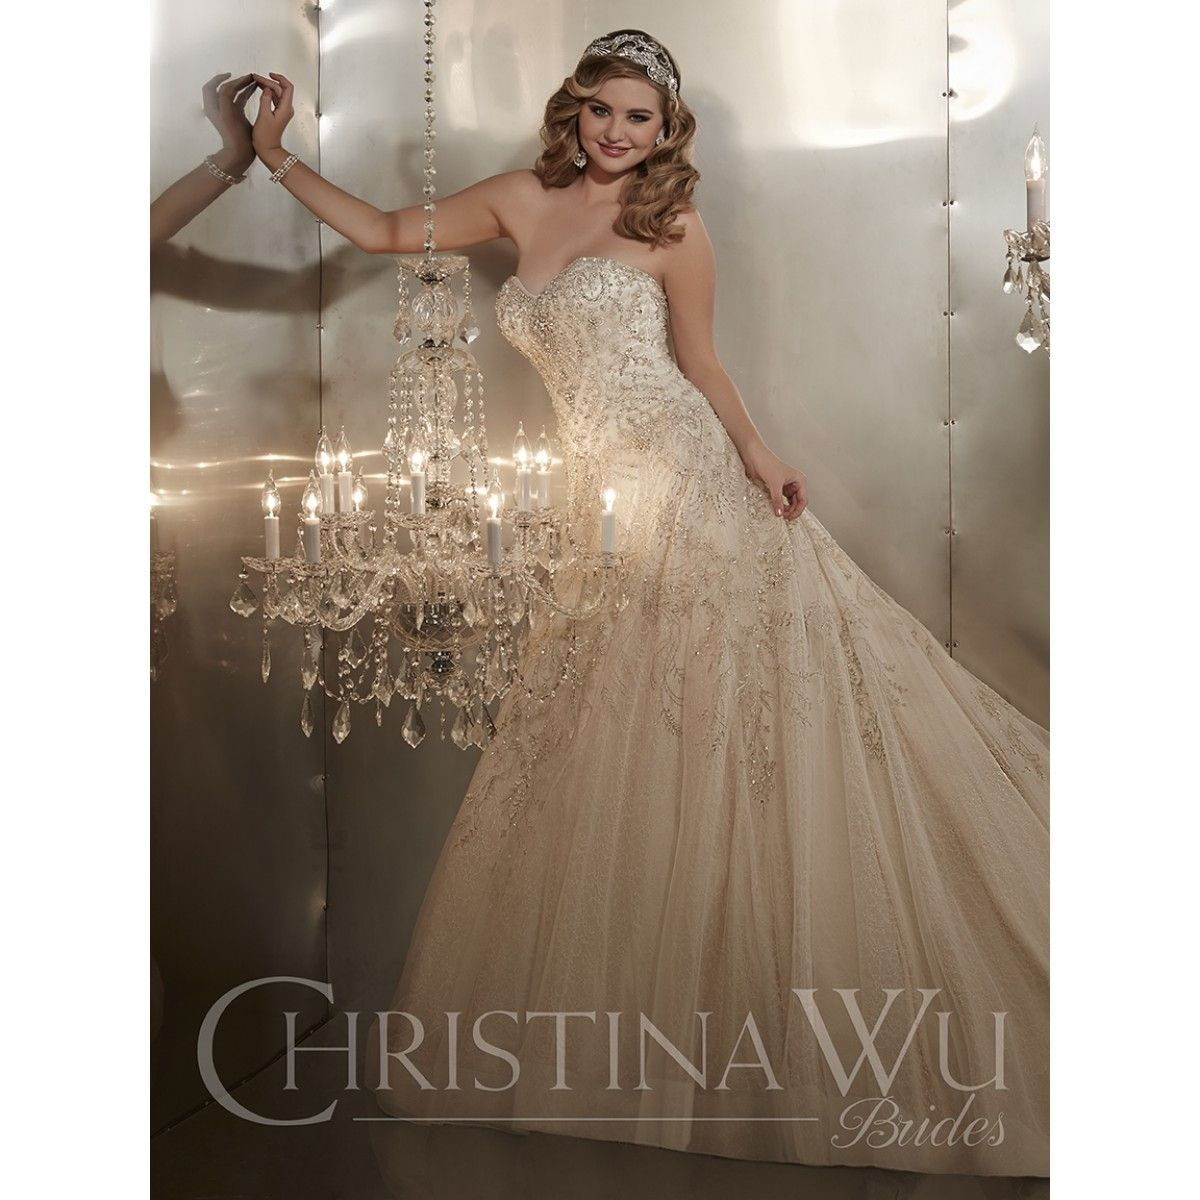 Christina wu wedding dresses  Style   best bridal prices com Embroidered Tulle